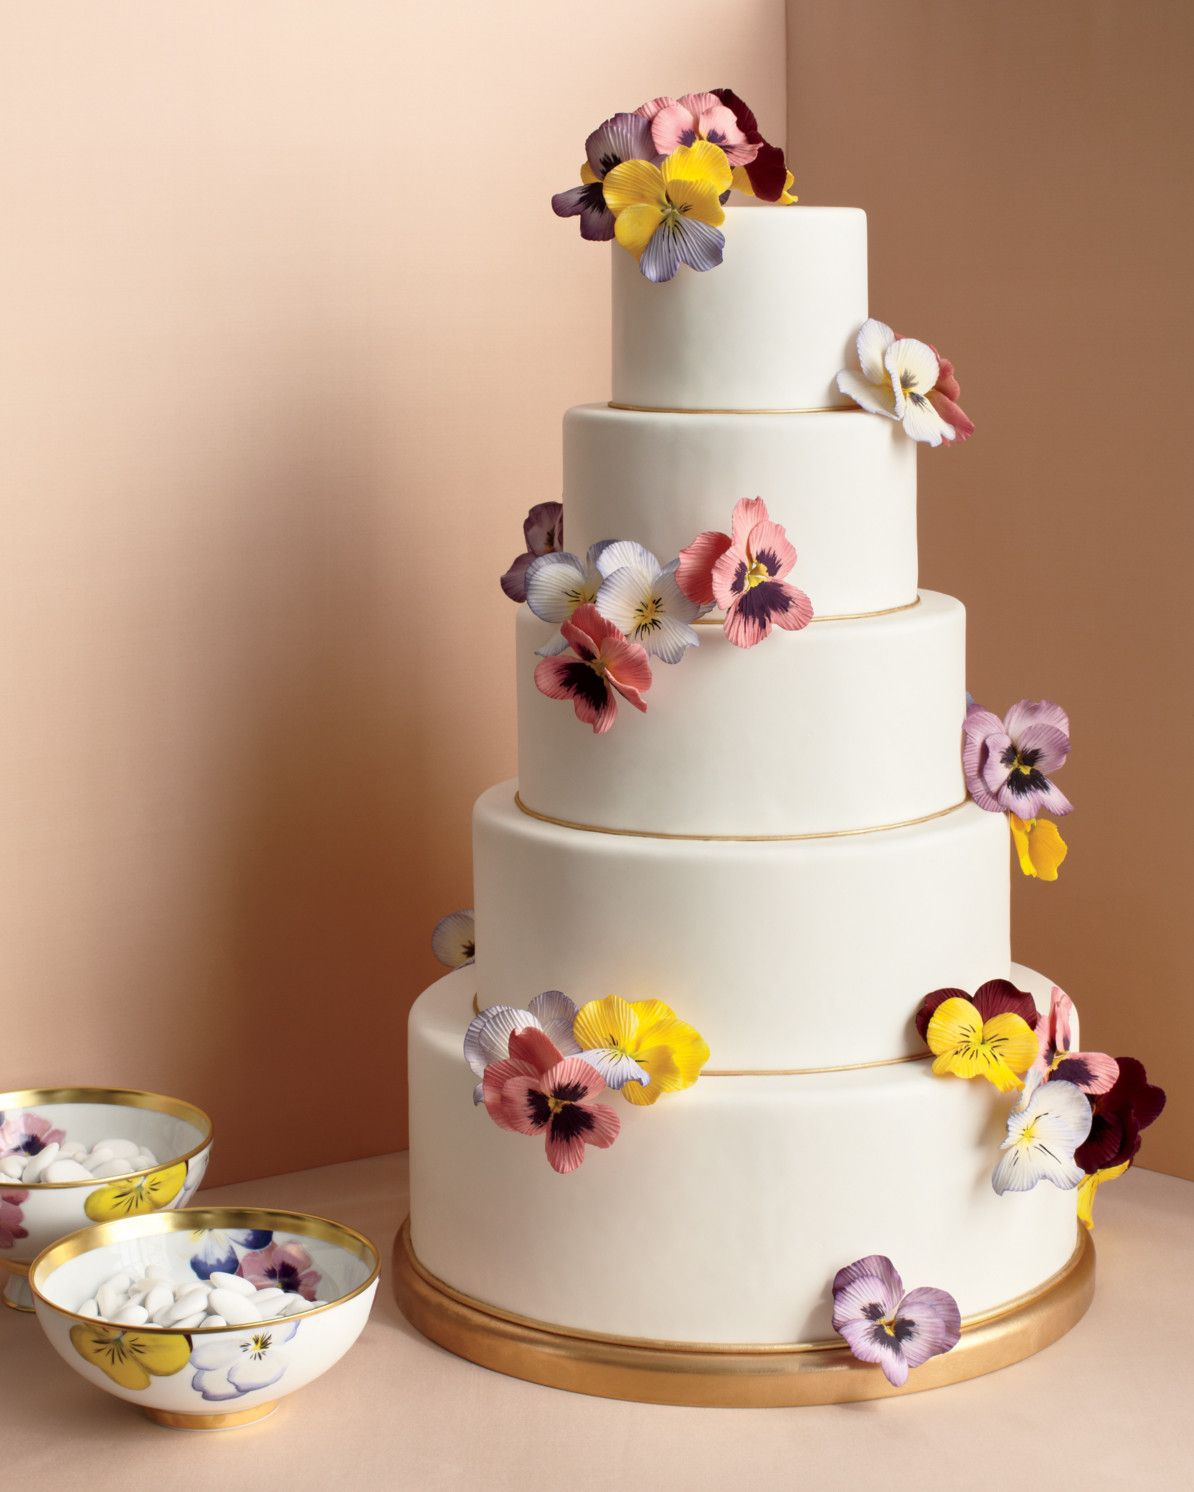 This fivetiered cake by cake designer ron benisrael takes